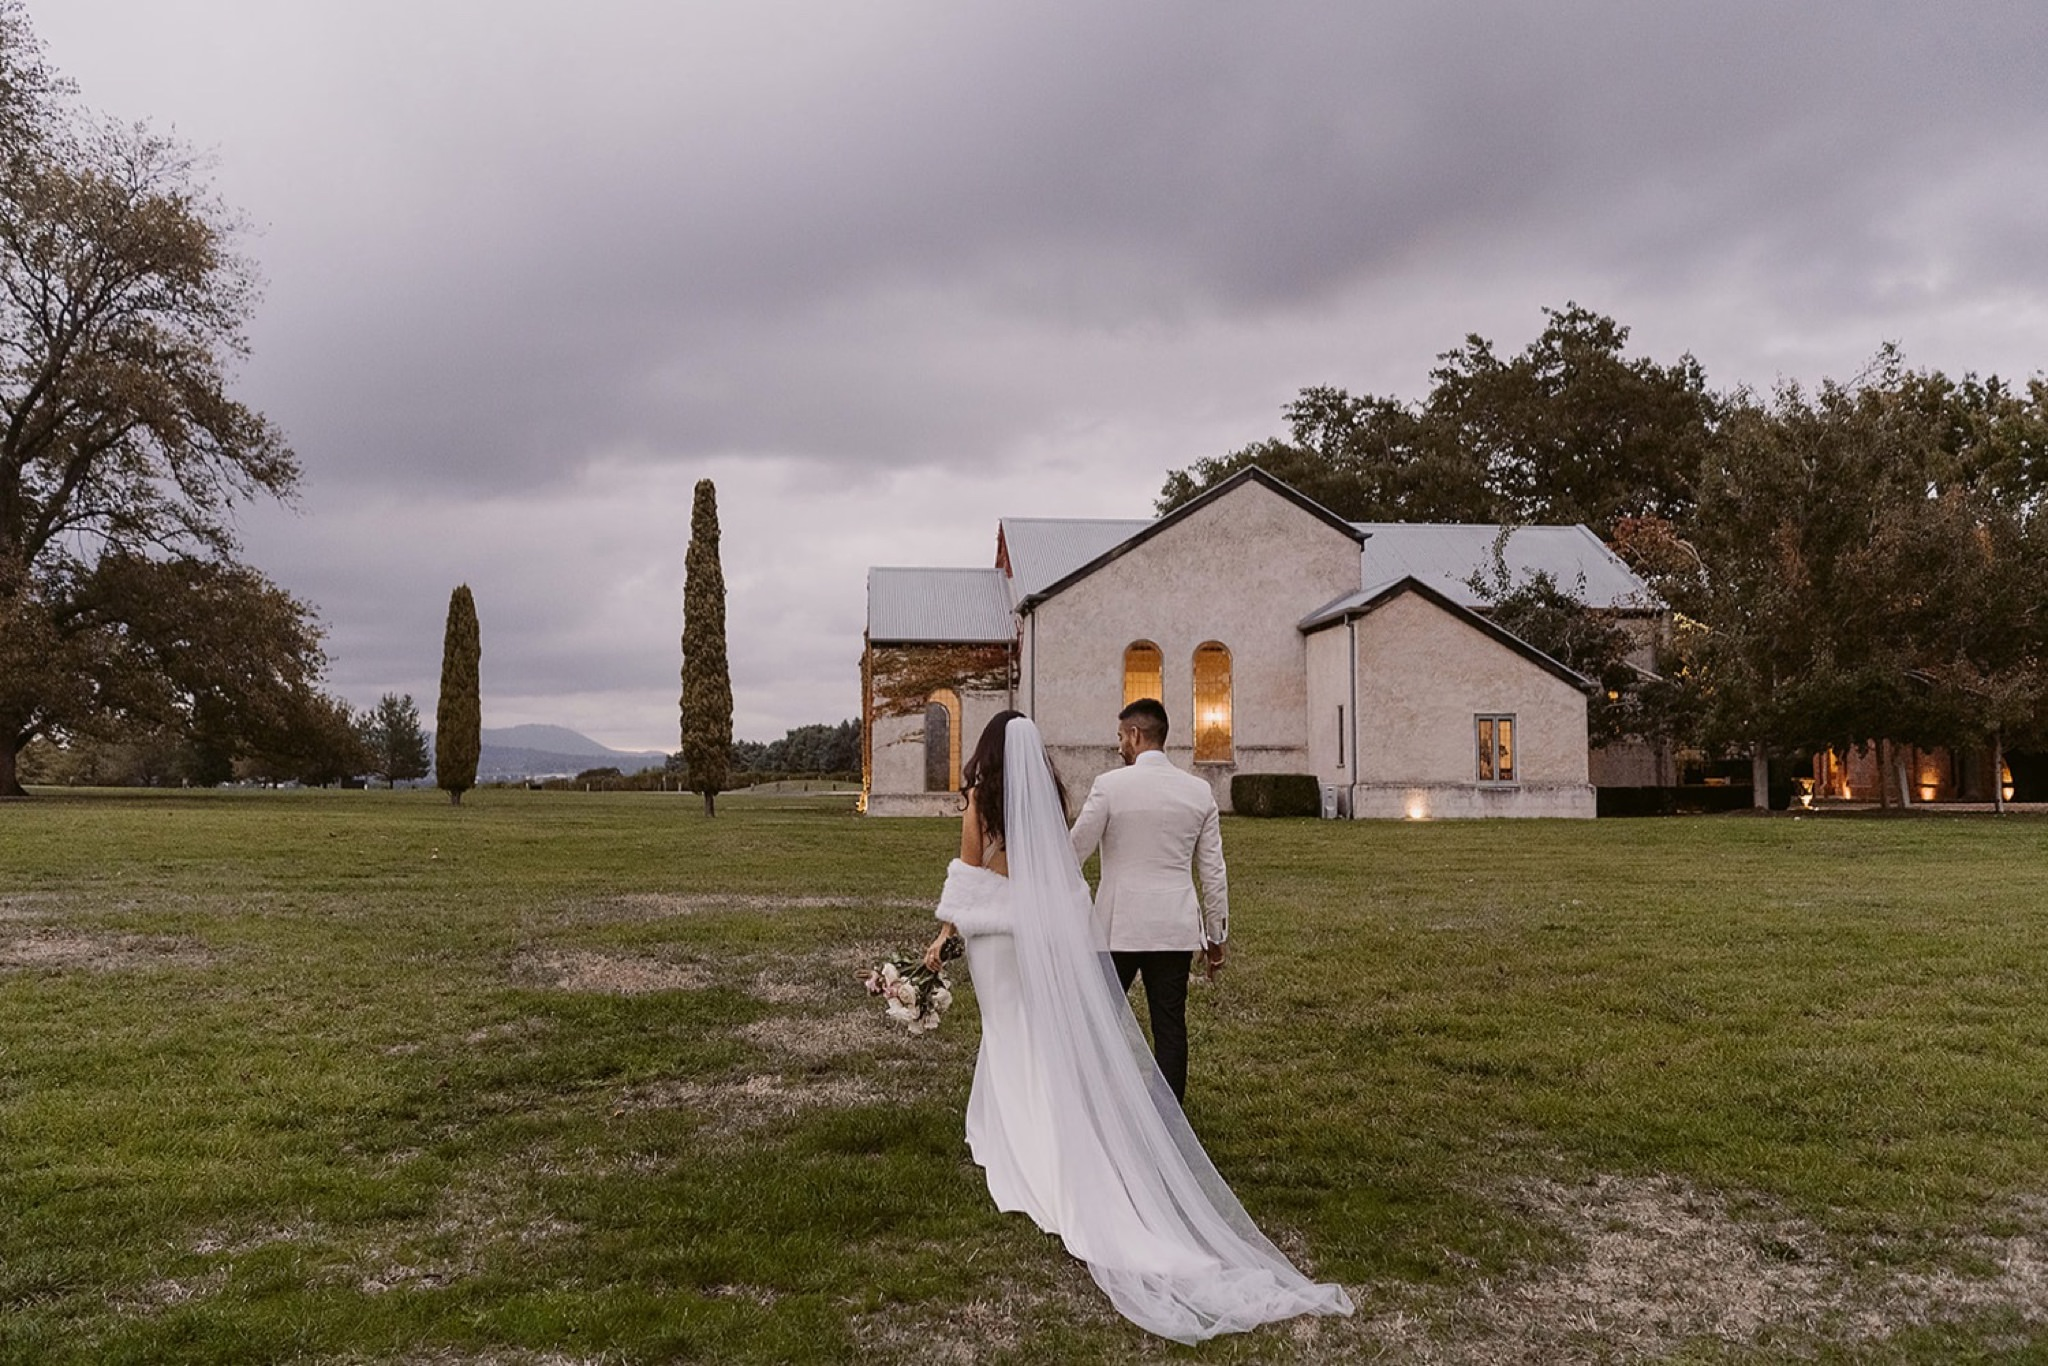 Stones of the Yarra Valley wedding photographer Ashleigh haase103.jpg